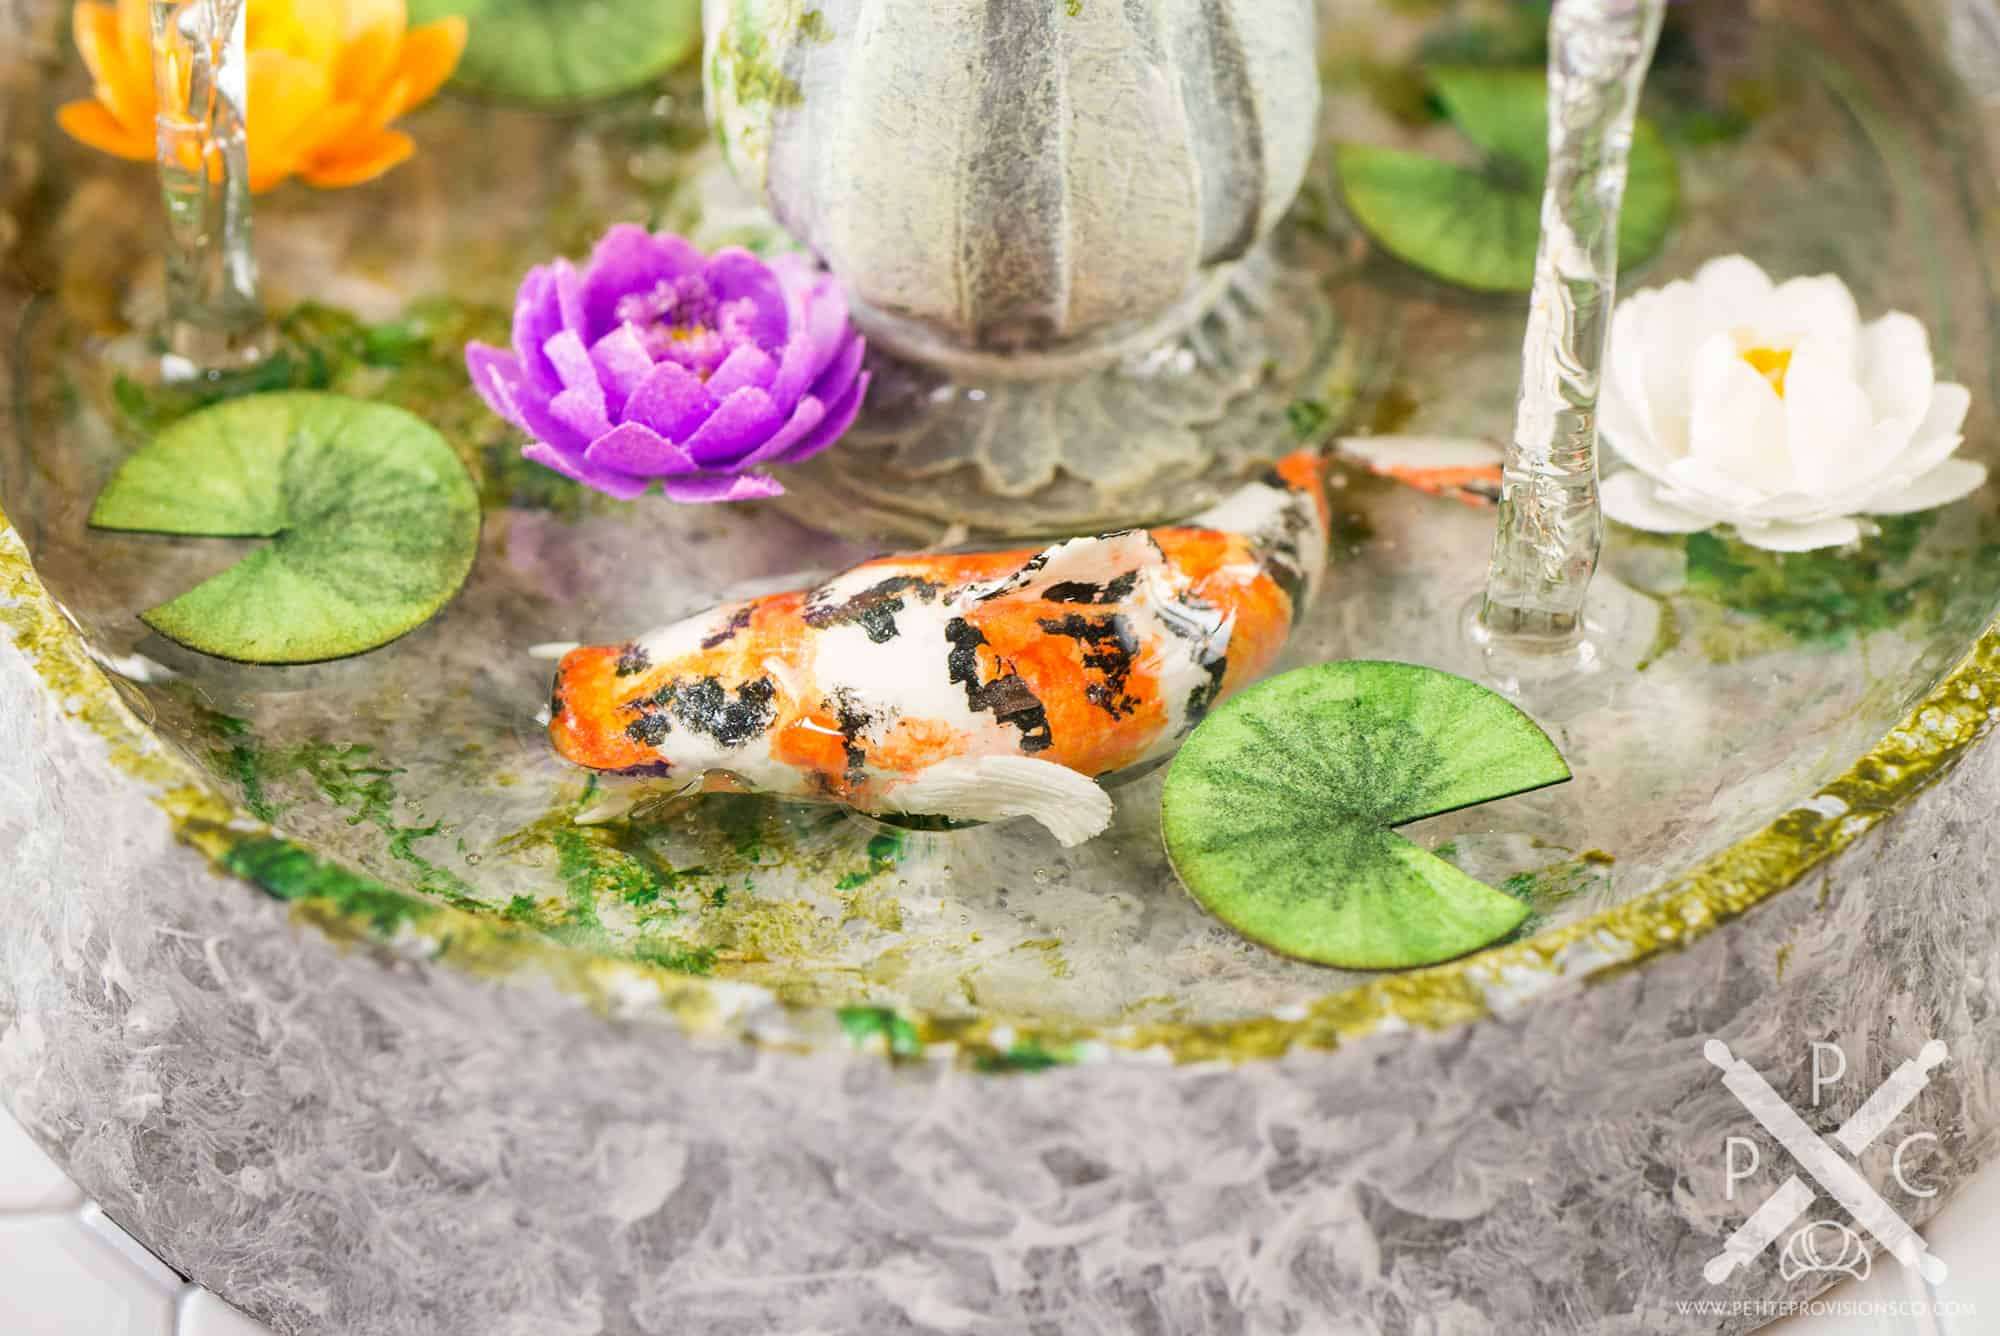 Dollhouse Miniature Conservatory by The Petite Provisions Co. - Koi Fish and Water Lilies